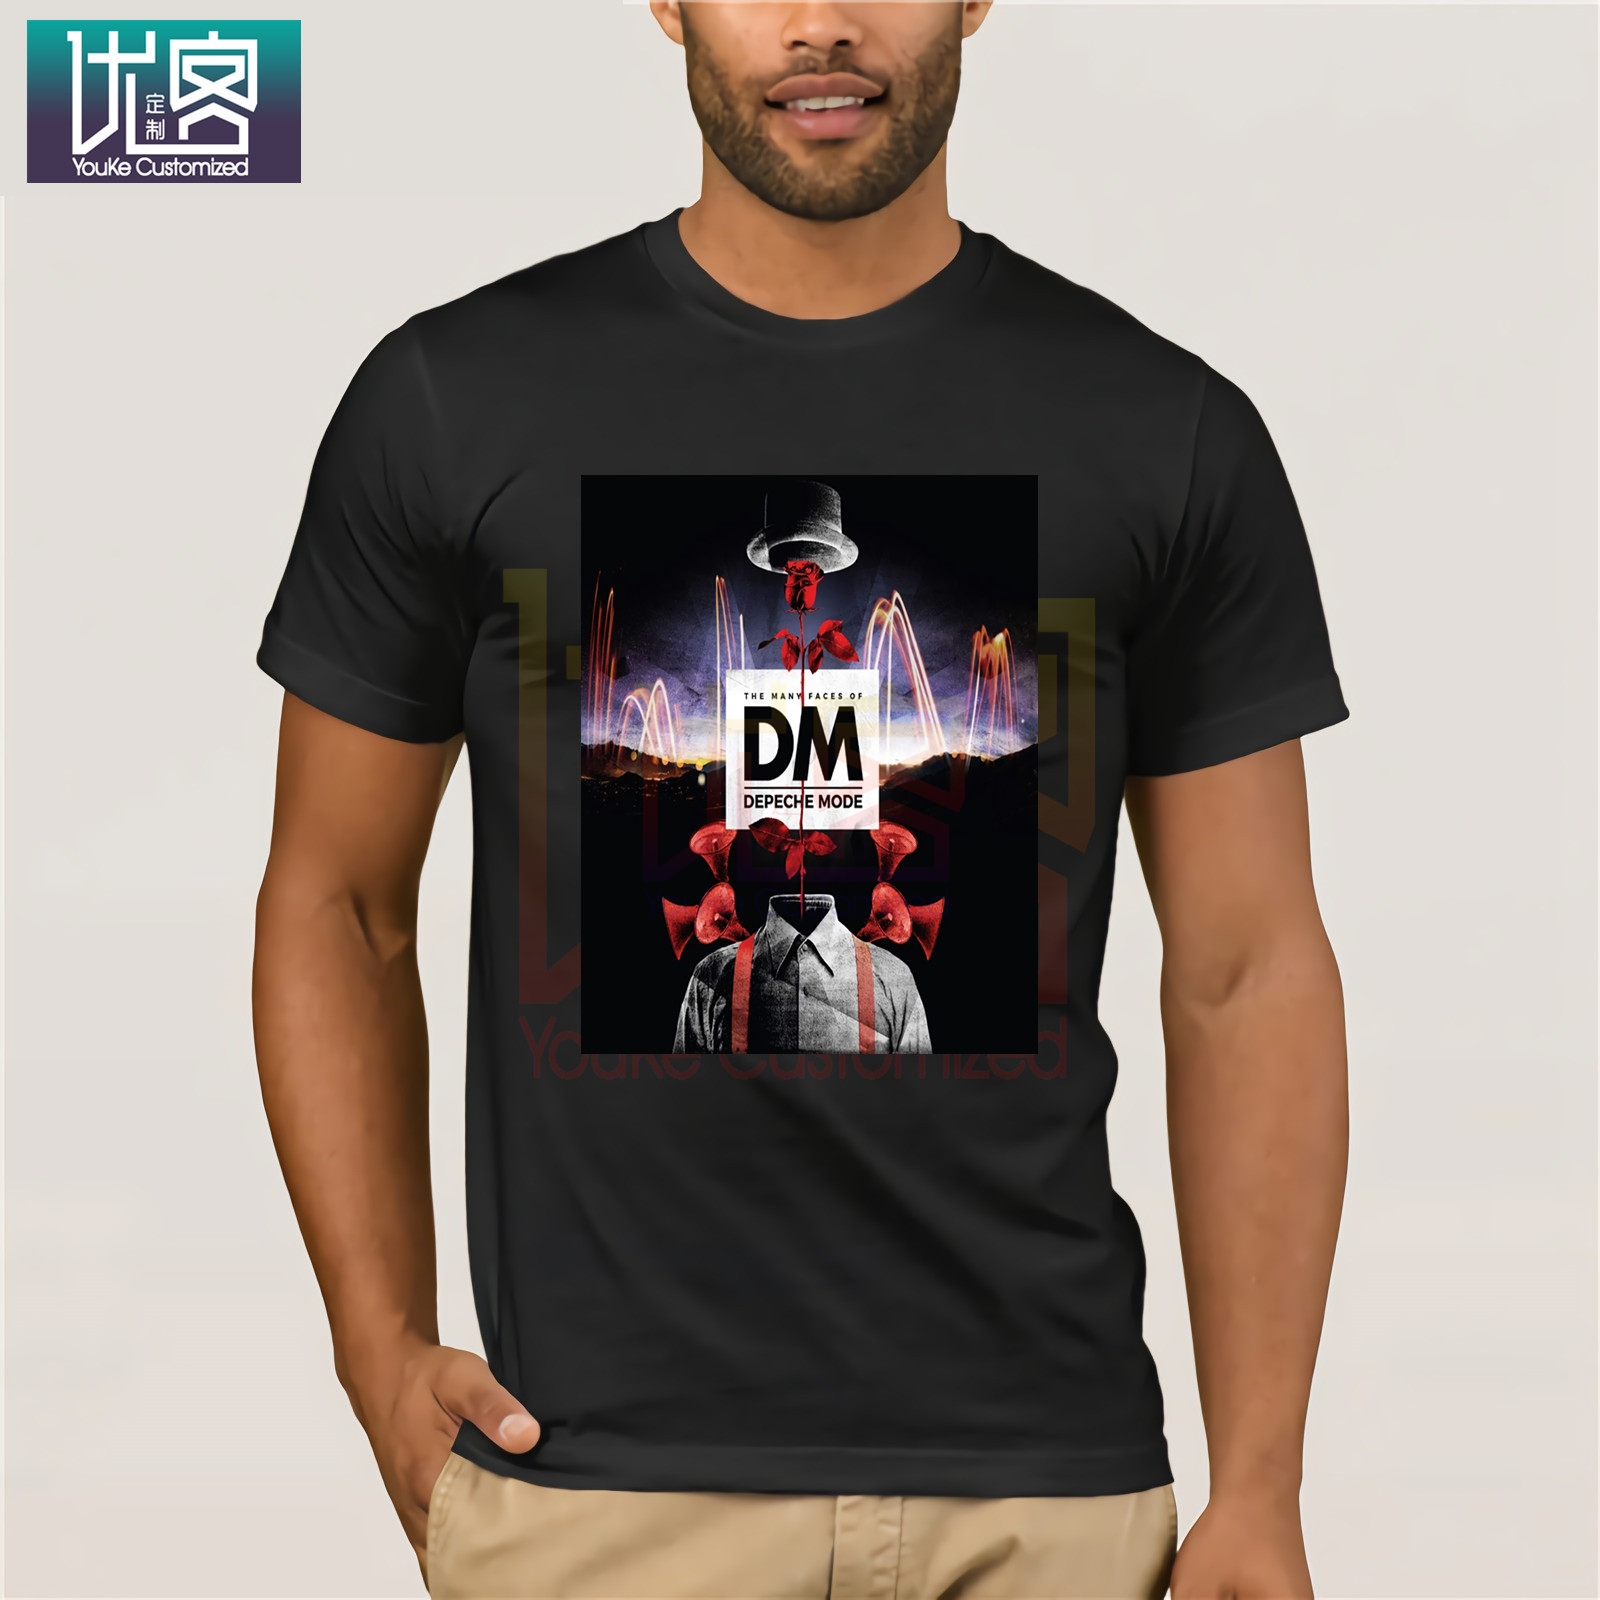 Many Faces Of Depeche Shirt Mode Amazing Short Sleeve Unique Funny Tees Cotton Tops T Shirt Funny Tees Cotton Tops T Shirt